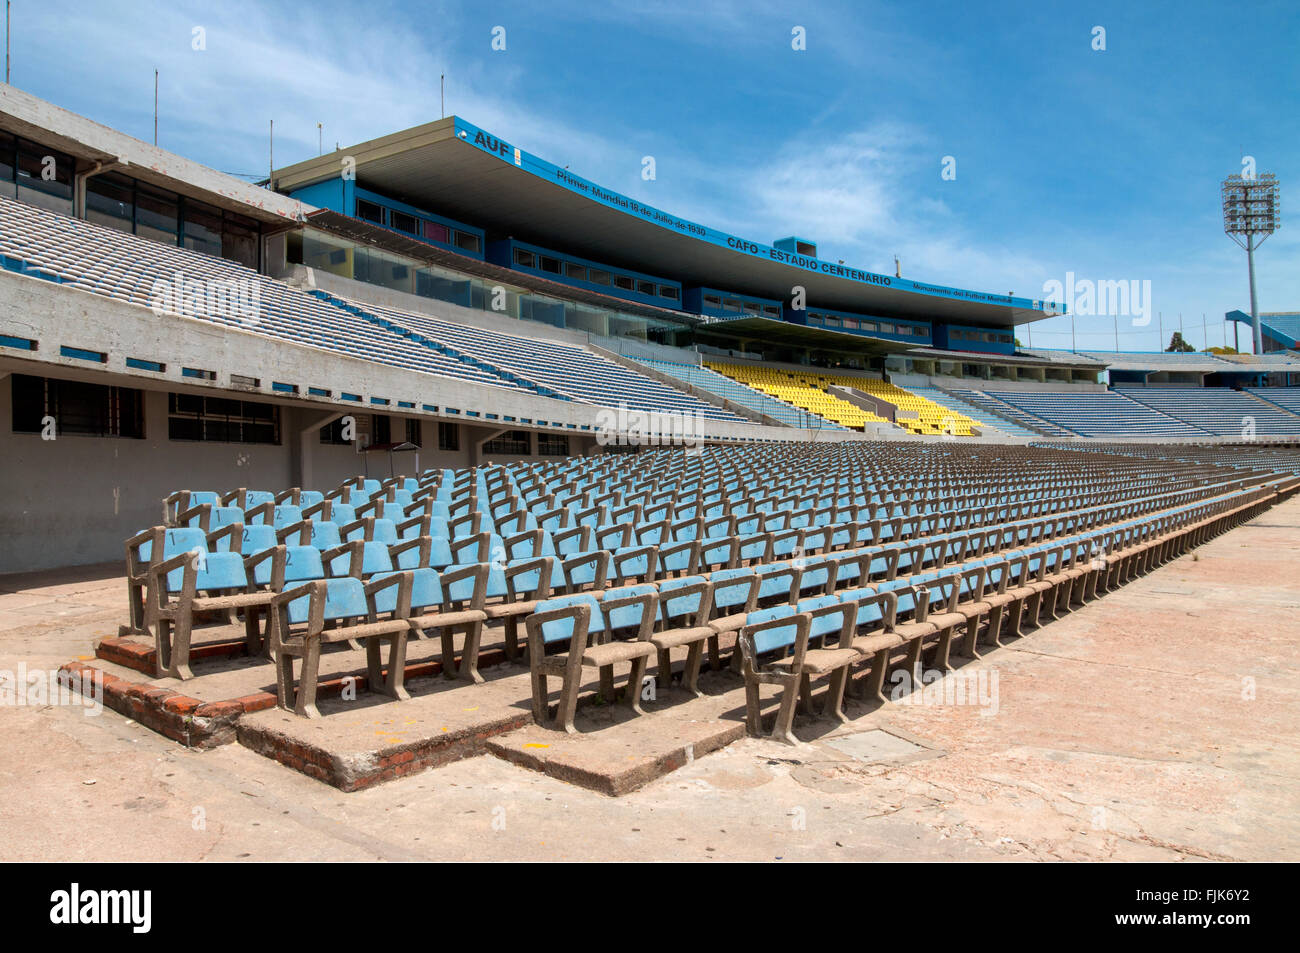 Stands for fans at the Centenario Football Stadium, Montevideo, Uruguay - Stock Image